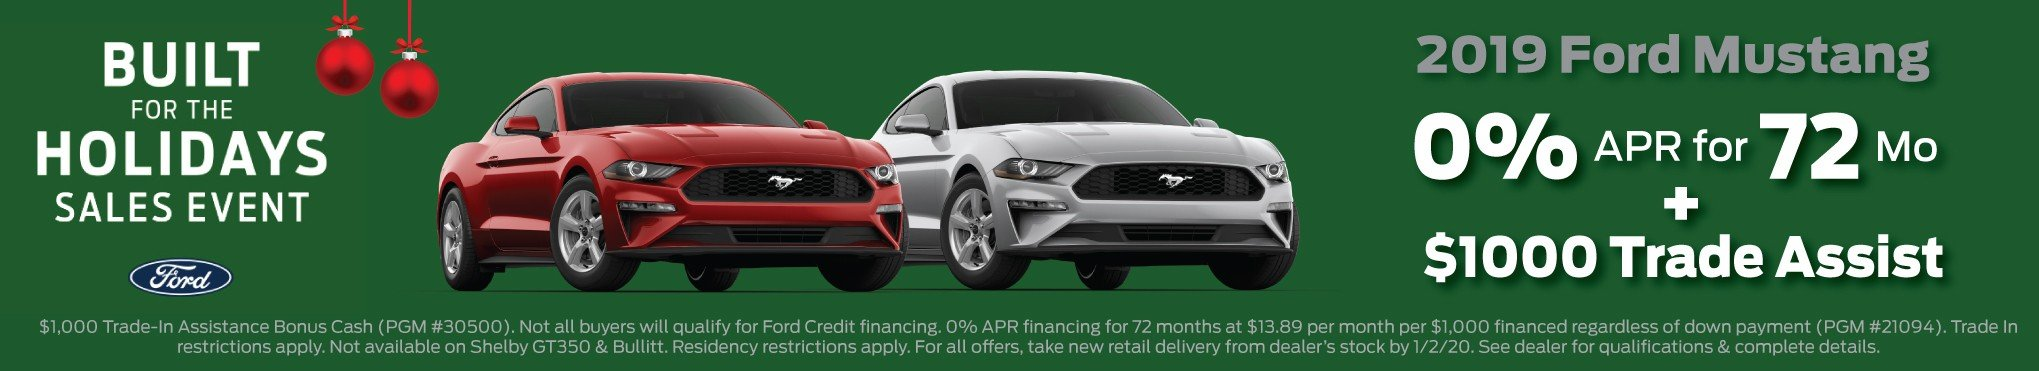 2019 Mustang Incentive 12-25-2019